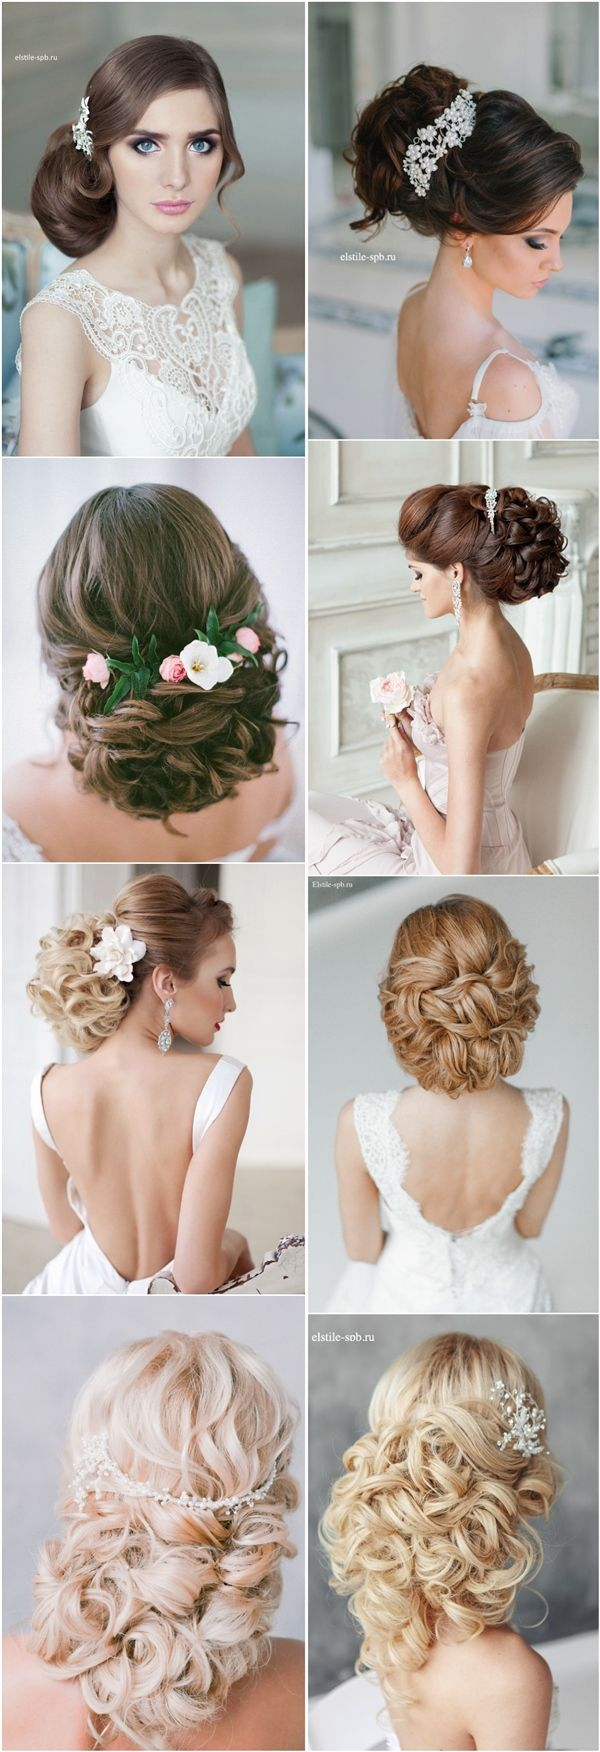 Gallery: long wavy wedding bridal hairstyle for long hair - Deer Pearl Flowers /...